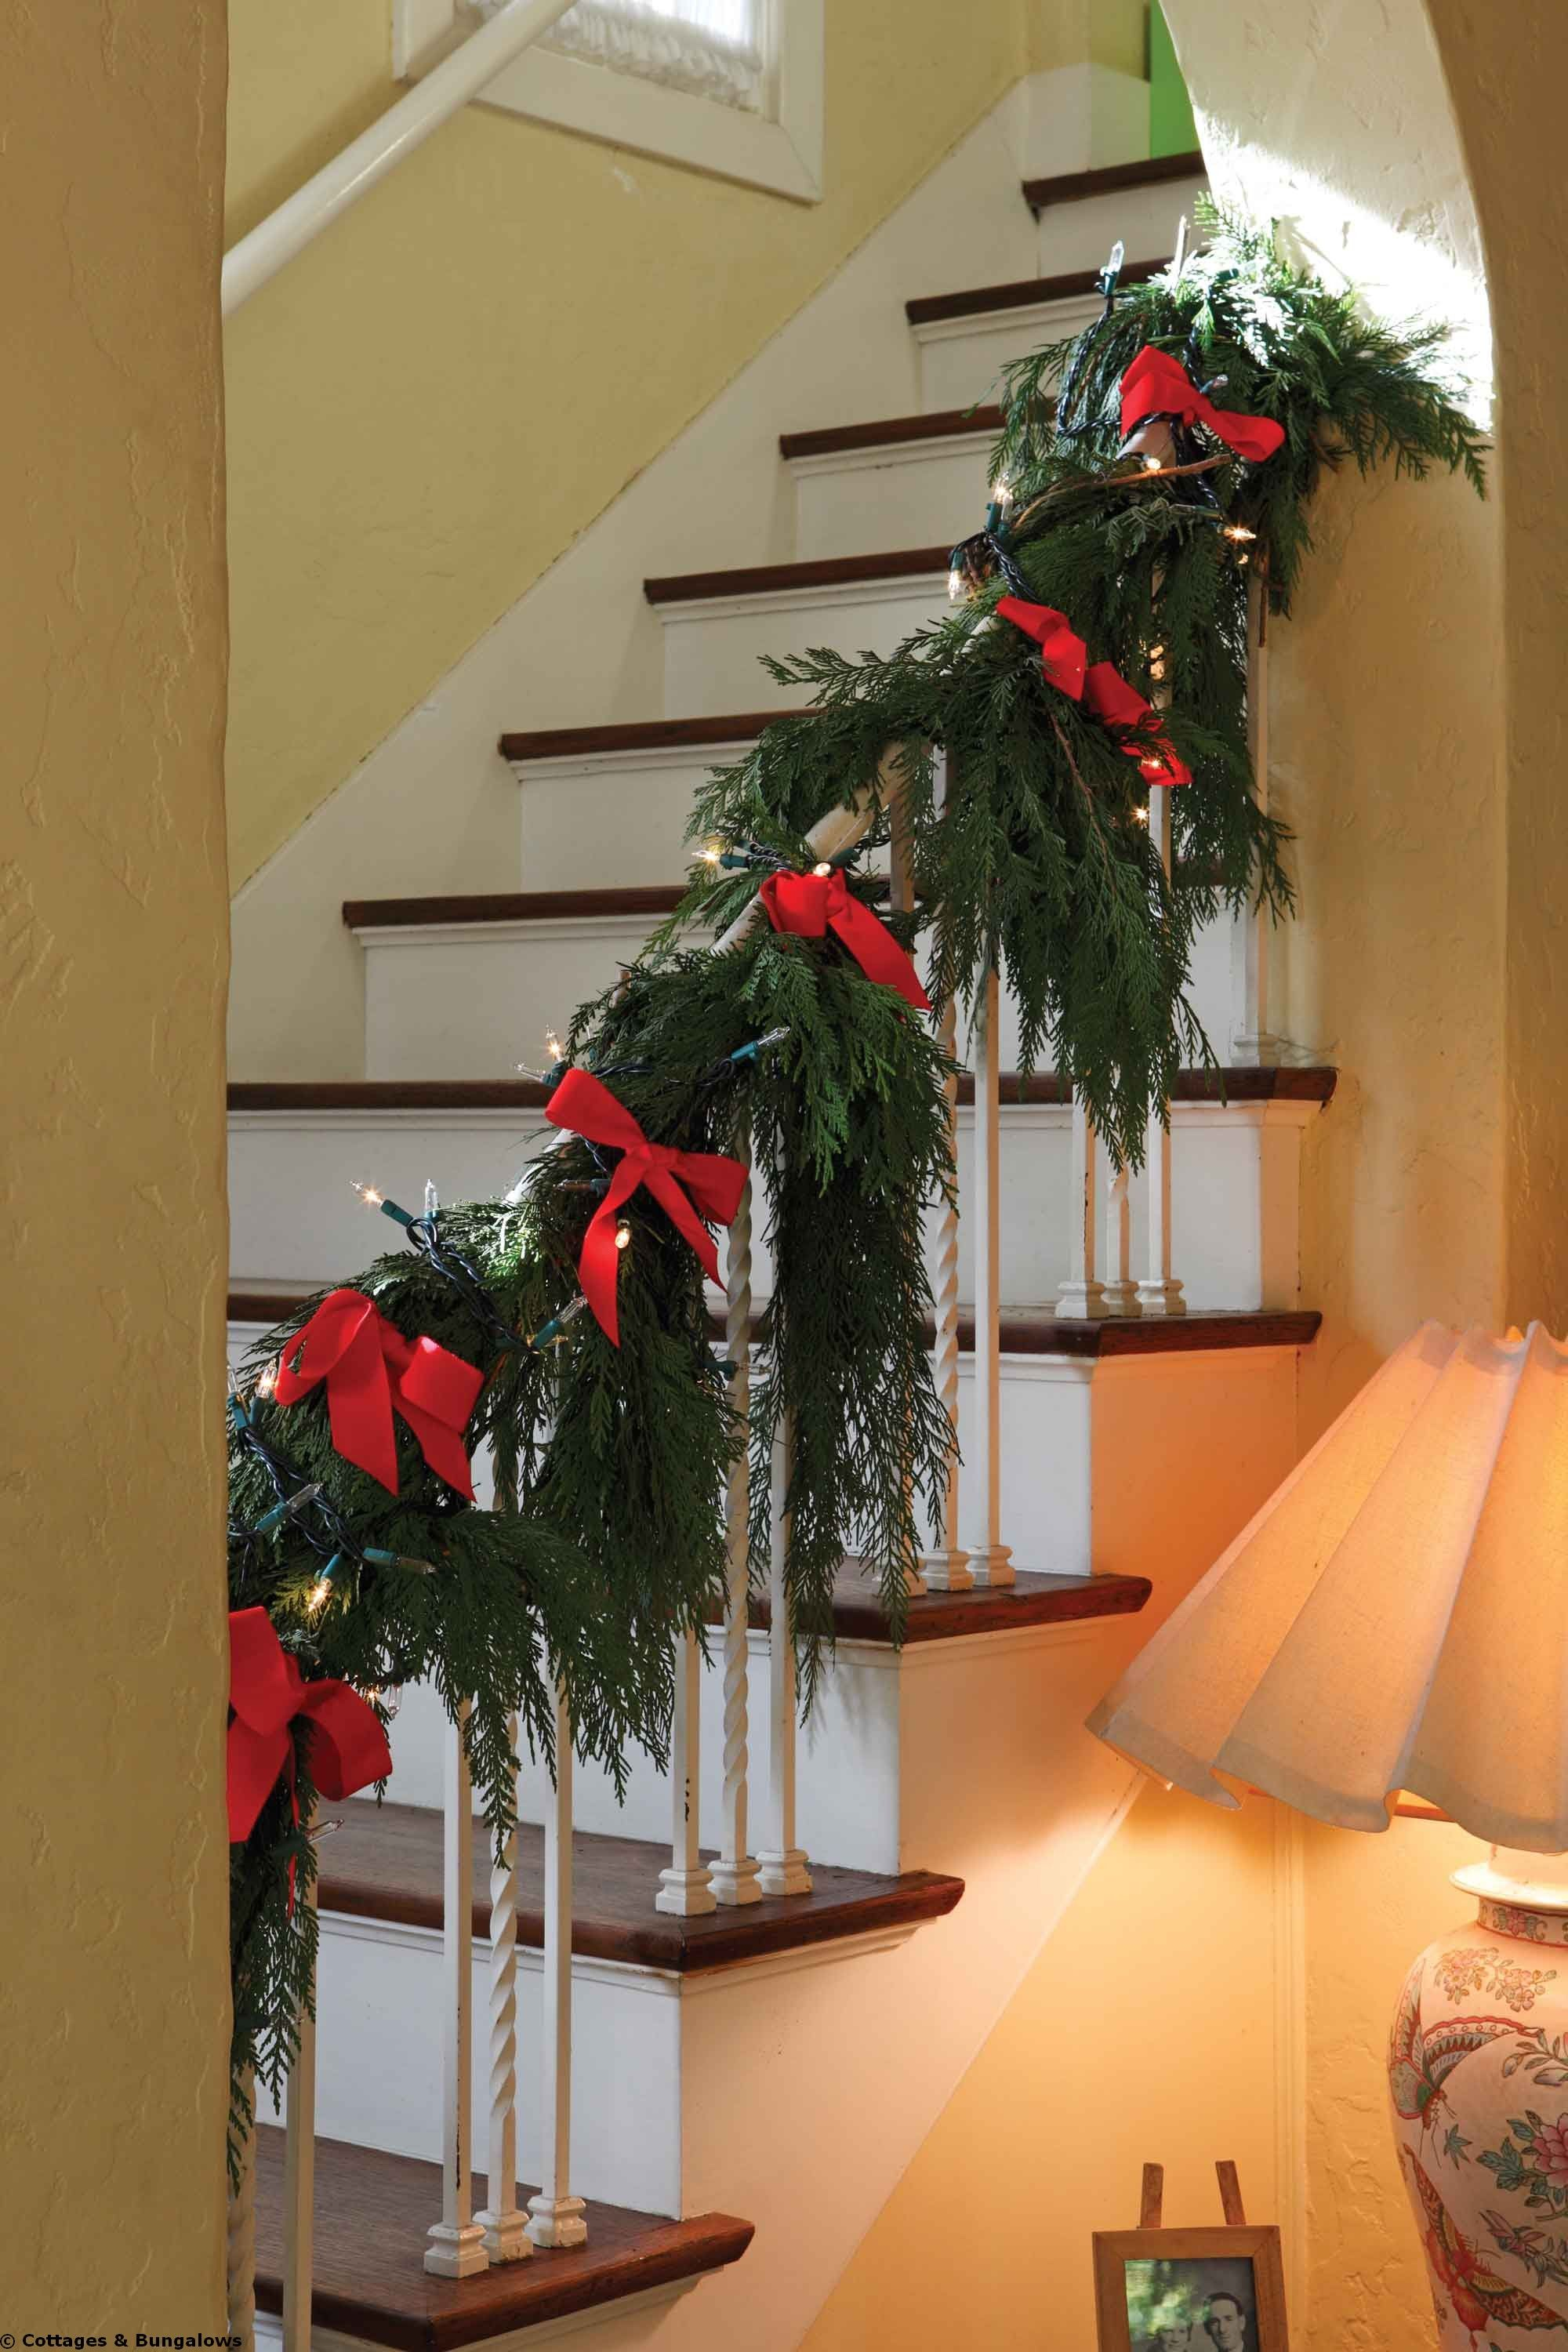 How to decorate for christmas in european style holiday - How to decorate stairs for christmas ...